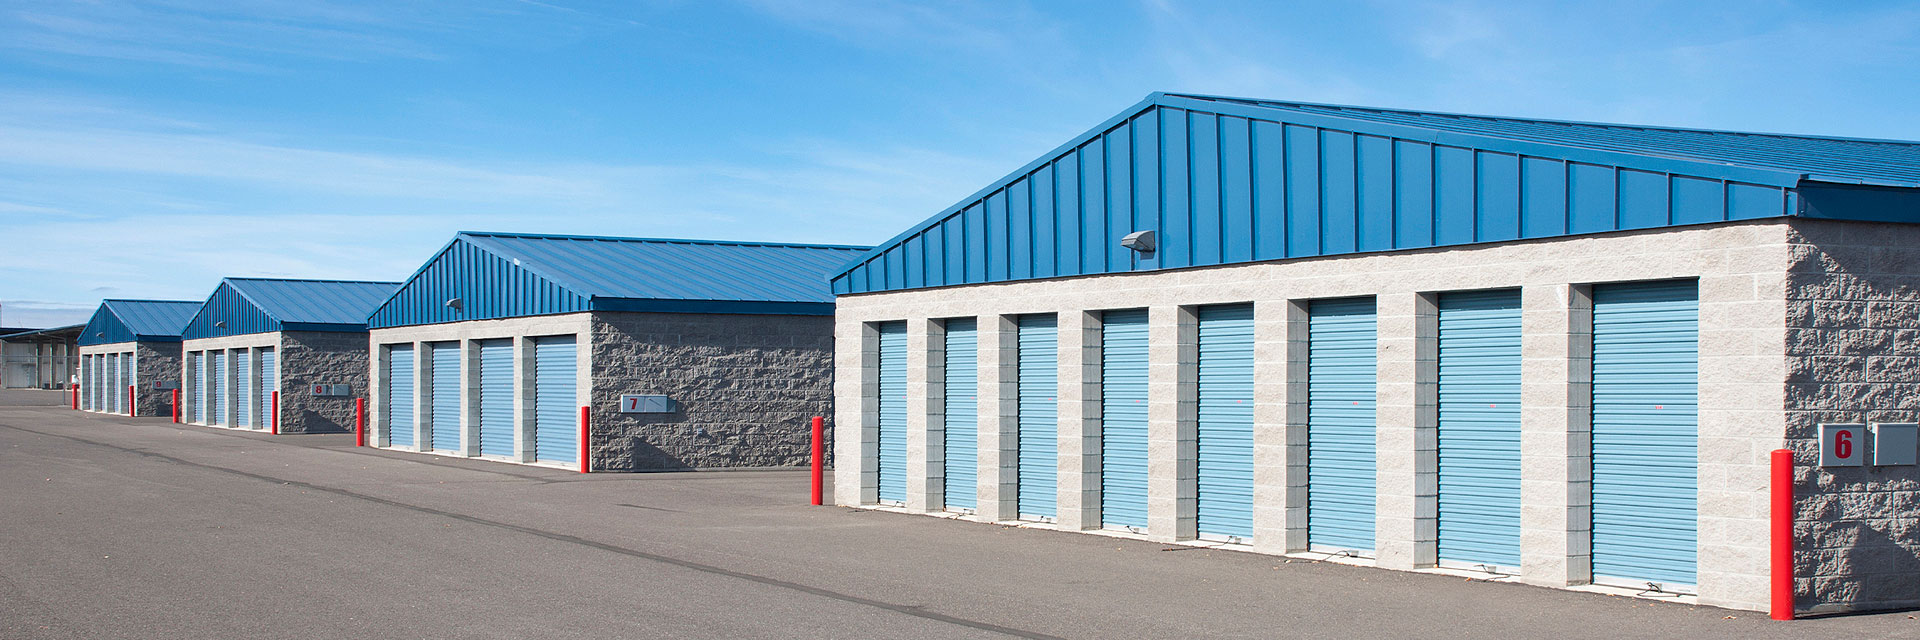 Argus Self Storage Advisors